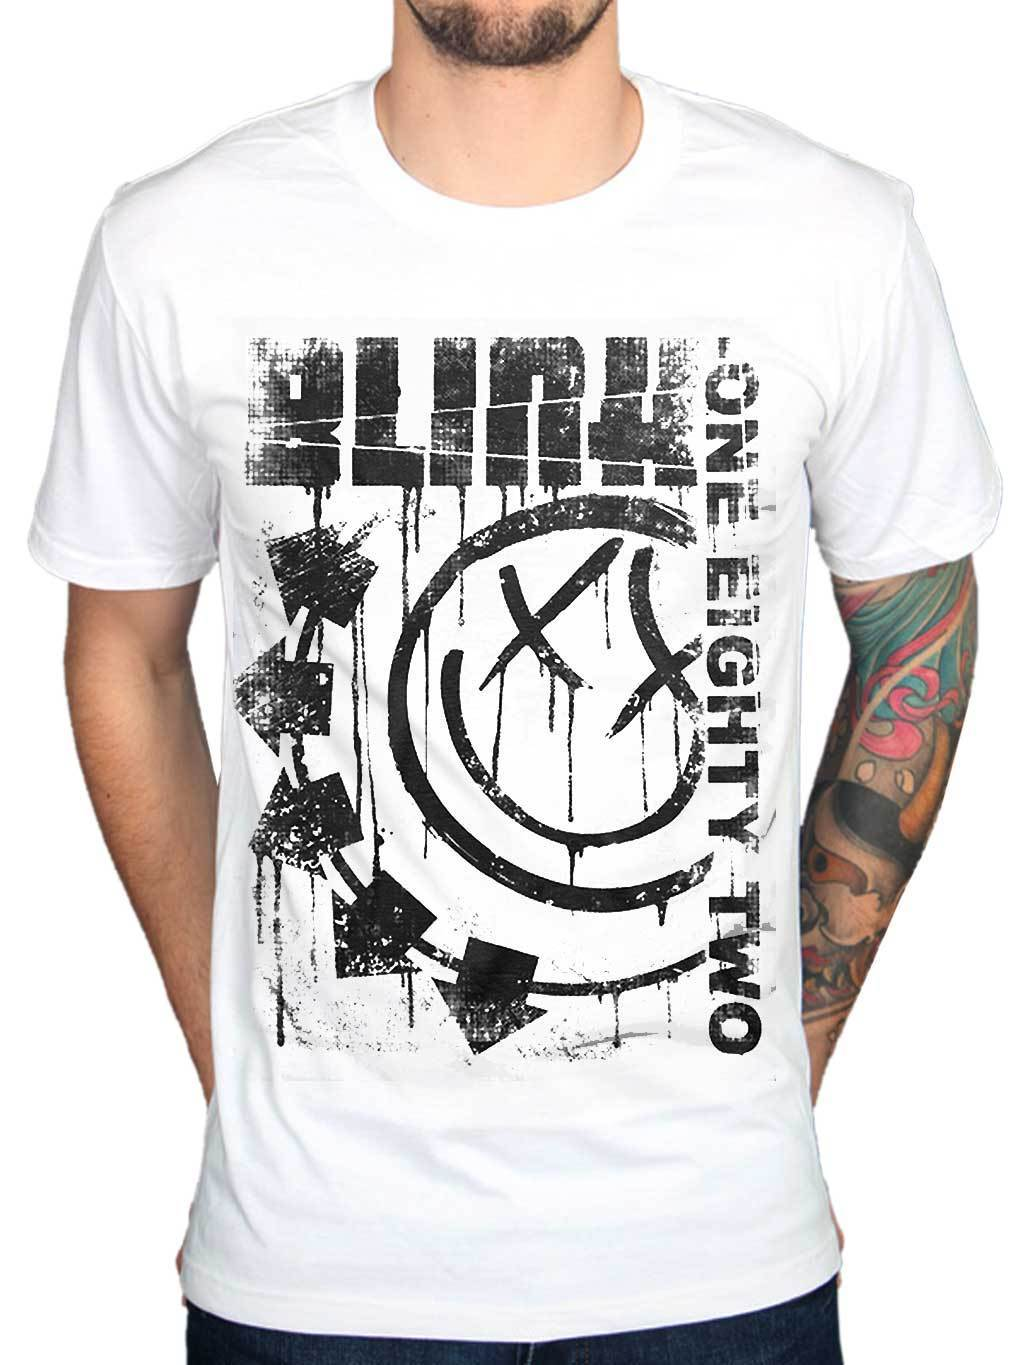 Official <font><b>Blink</b></font> <font><b>182</b></font> Spelled Out Jumbo Print T <font><b>Shirt</b></font> Rock Band Merch All Sizes Funny Short Sleeve Cotton T-<font><b>Shirts</b></font> Top Tee image